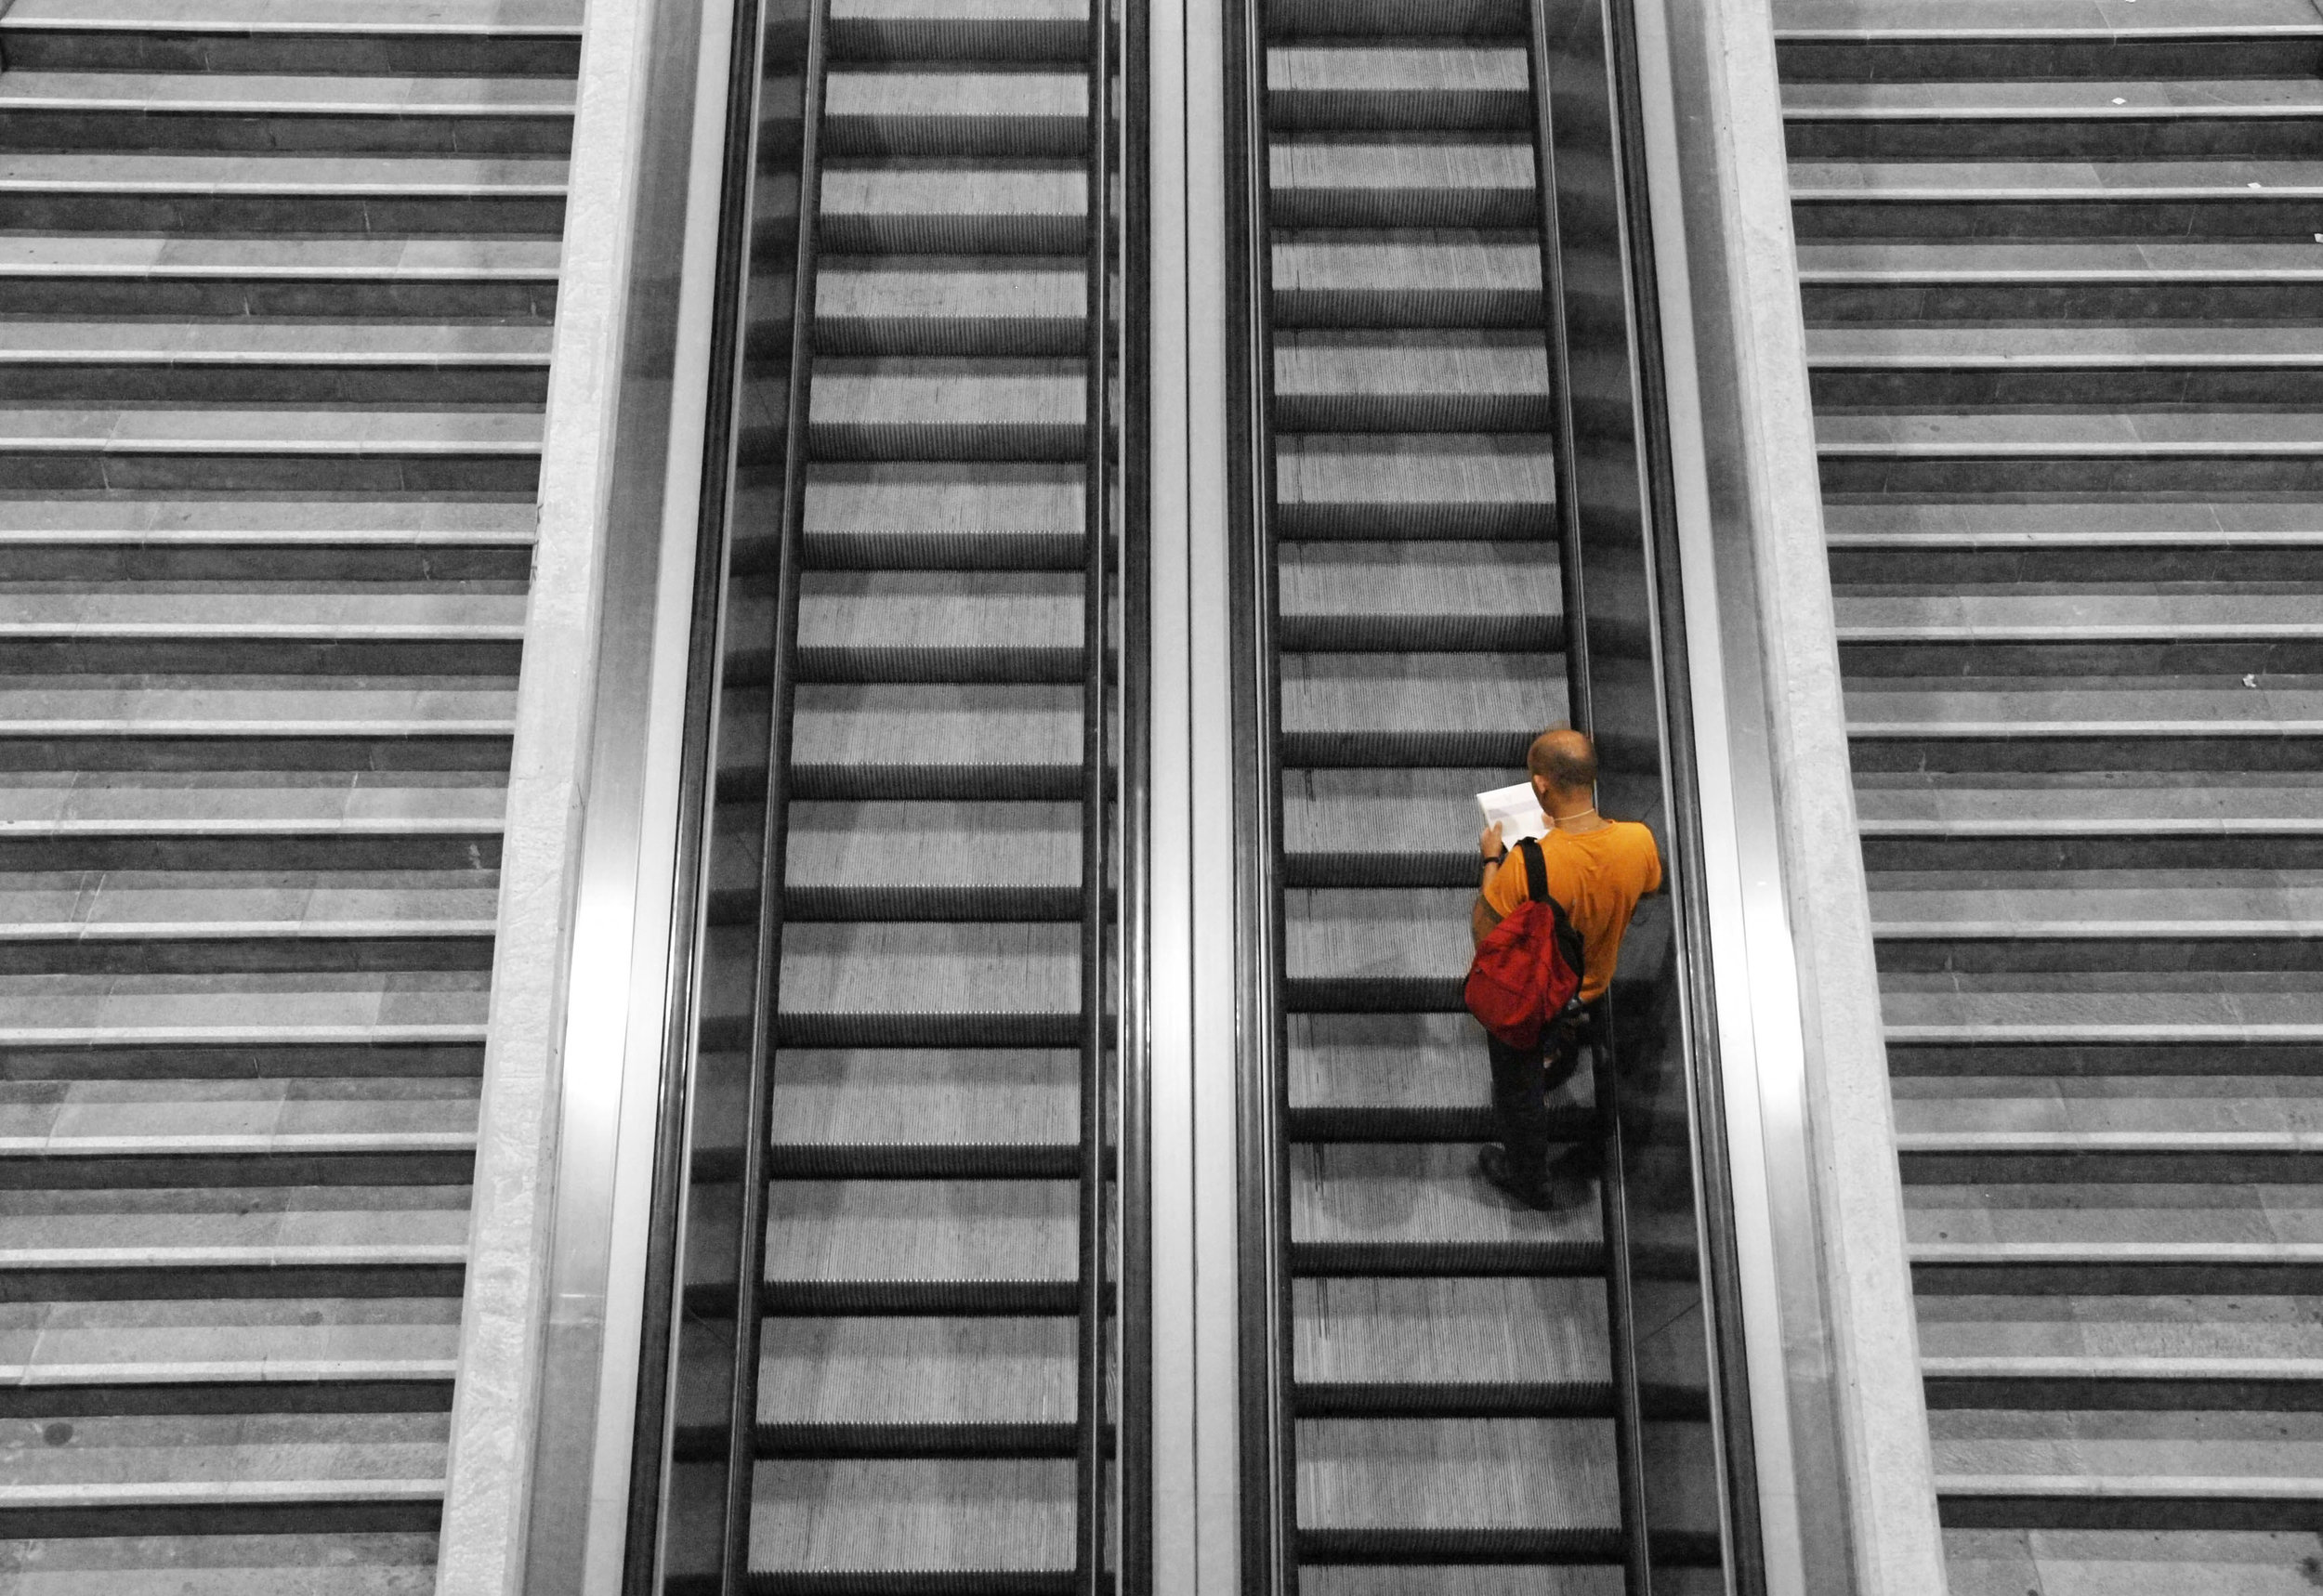 The Man in Orange by Manolo Toledo - Downloaded from 500px.jpg